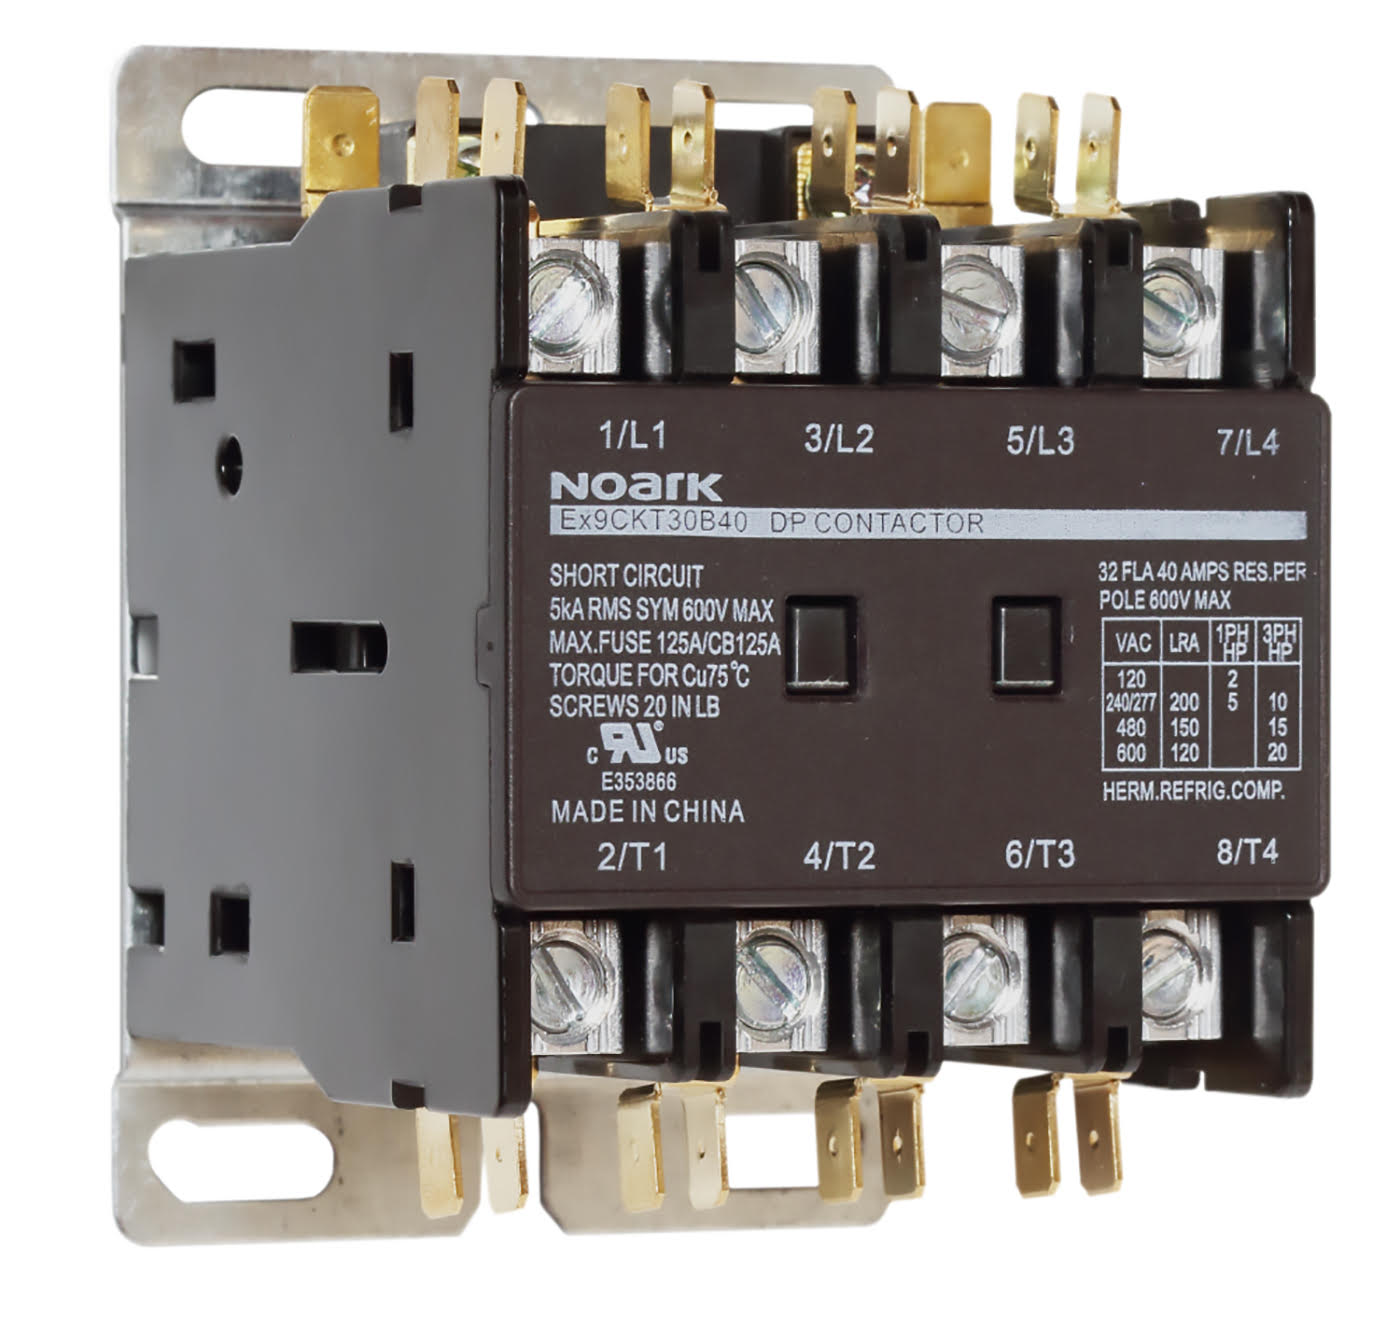 NOARK Electric announces Ex9CKT series of DP contactors